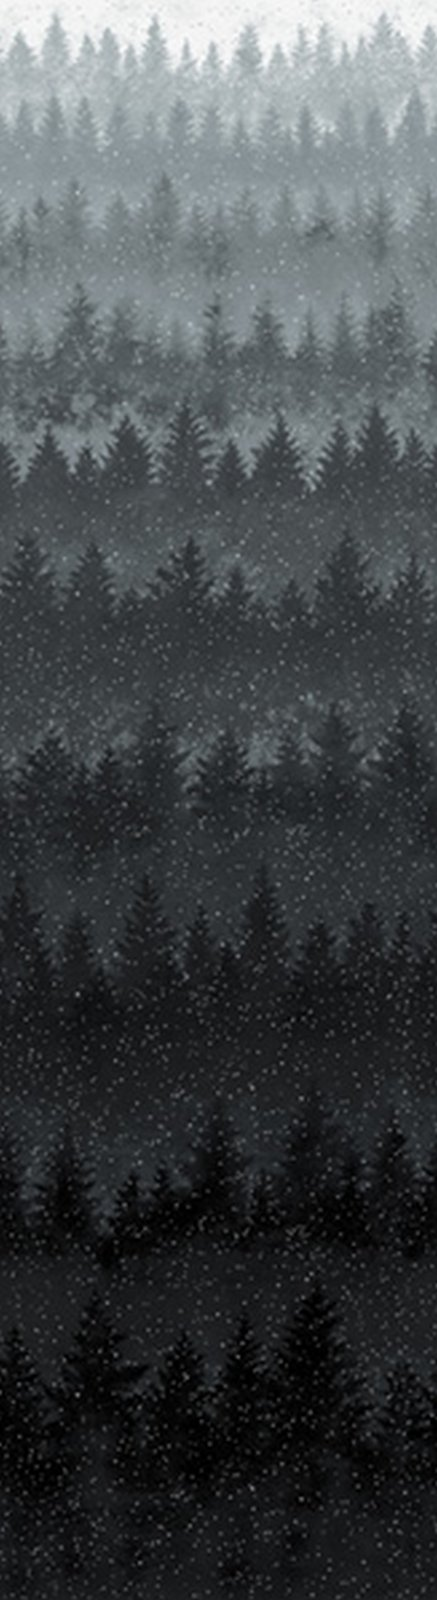 Can't Stop Falling - Trees -  Black/Silver